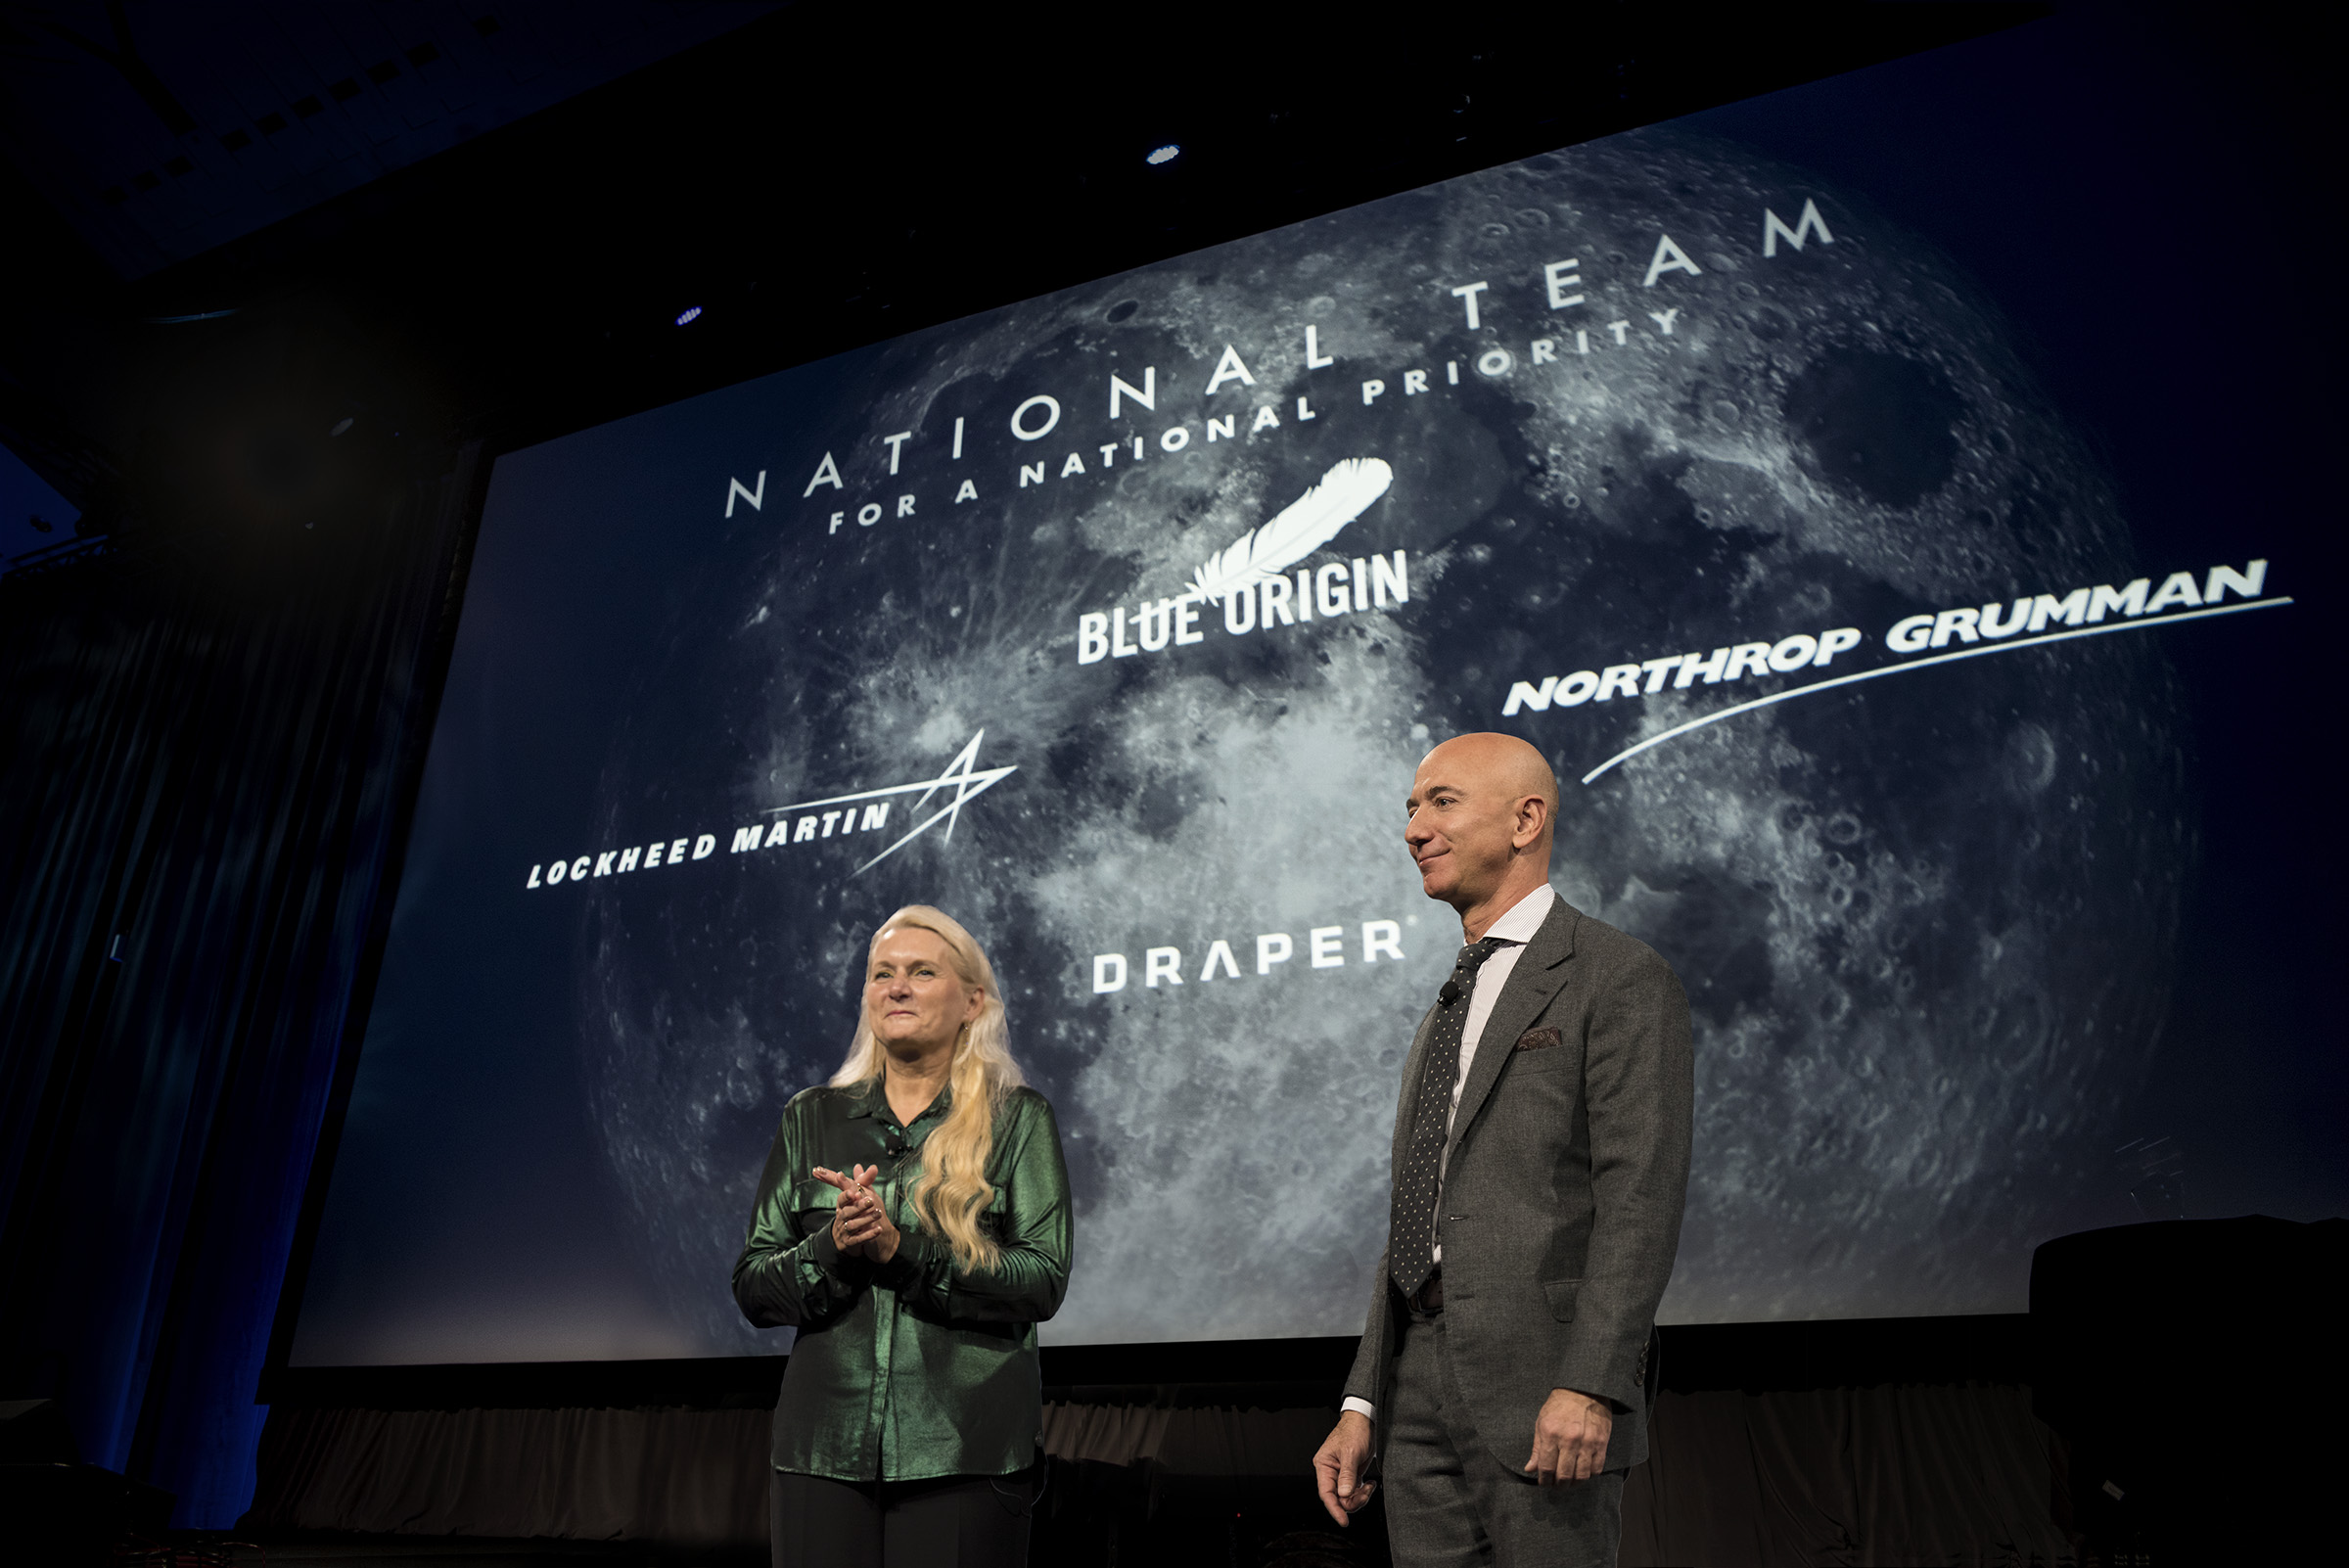 Blue Origin Announces National Team for Lunar Lander